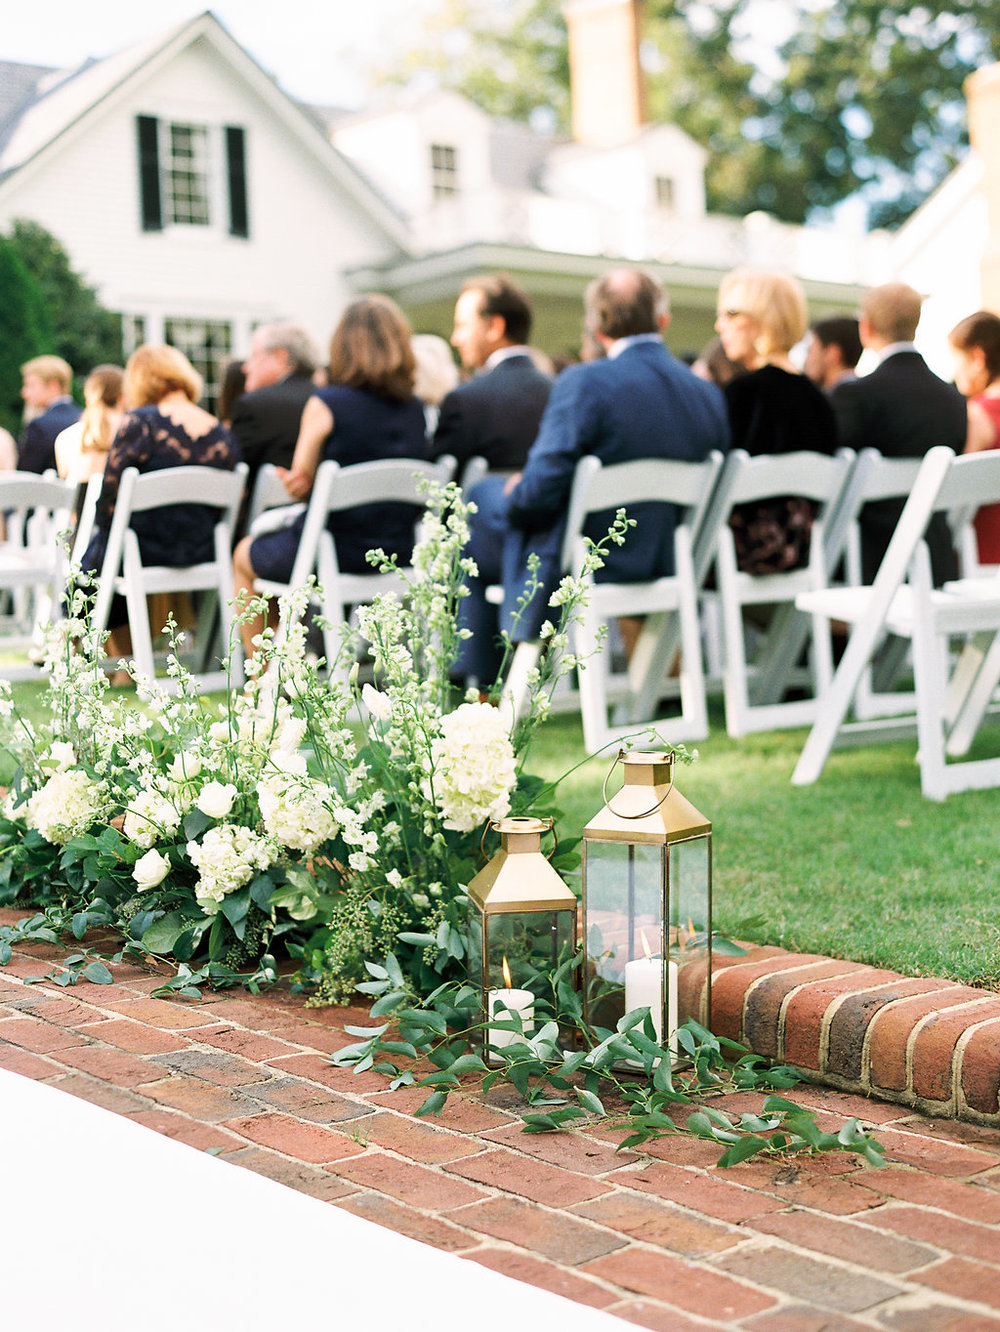 Flowers lining the aisle